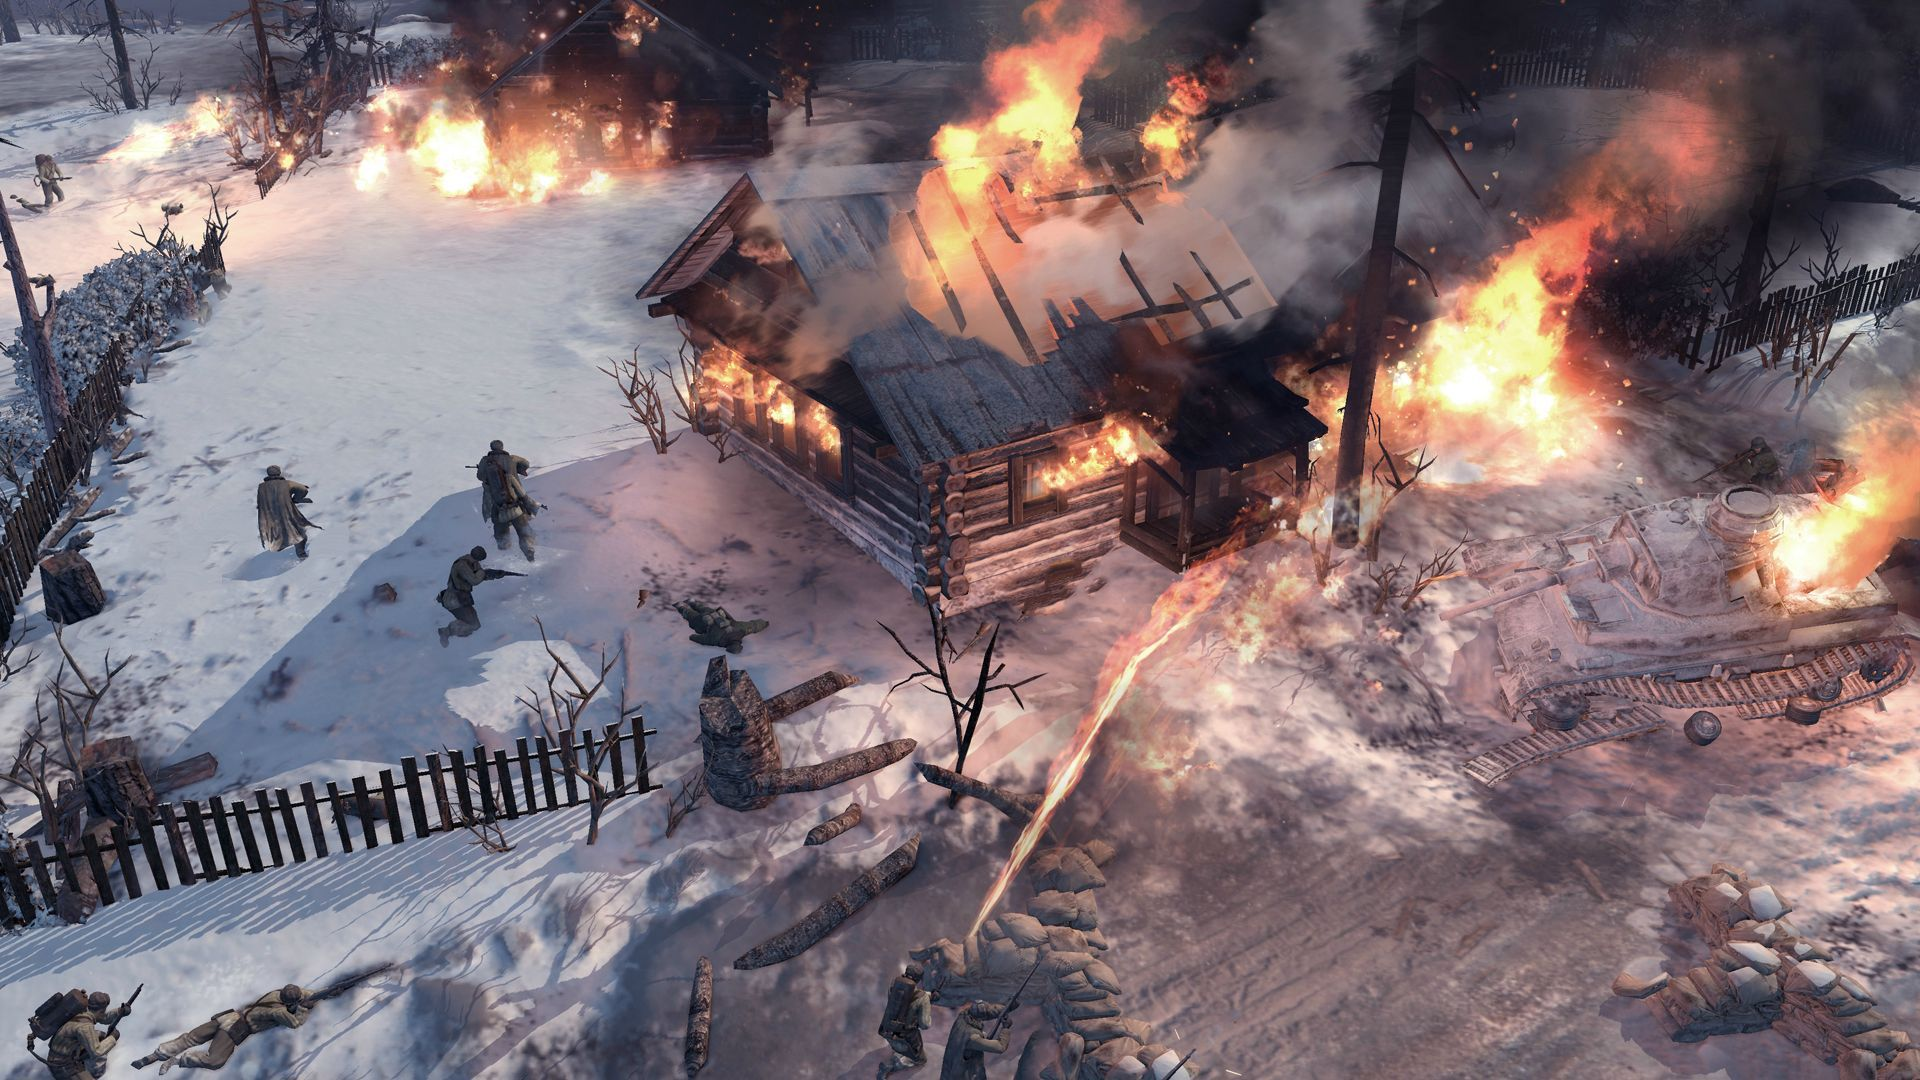 Game Fix Crack Company Of Heroes 2 V3 0 0 9704 All No Dvd